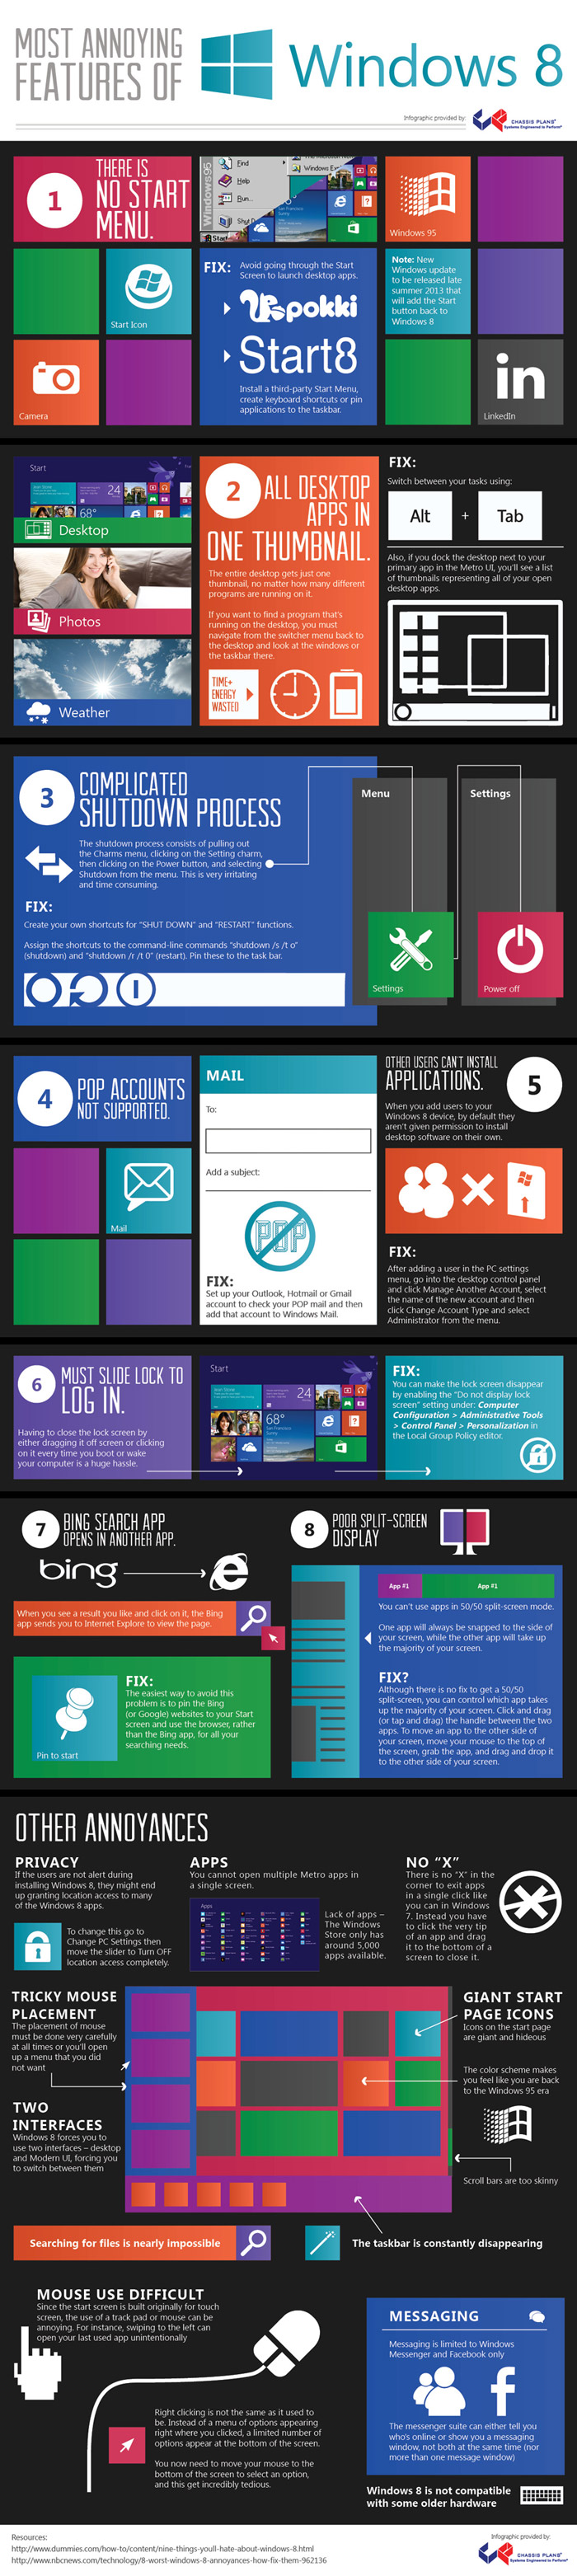 Most Annoying Features of Windows 8